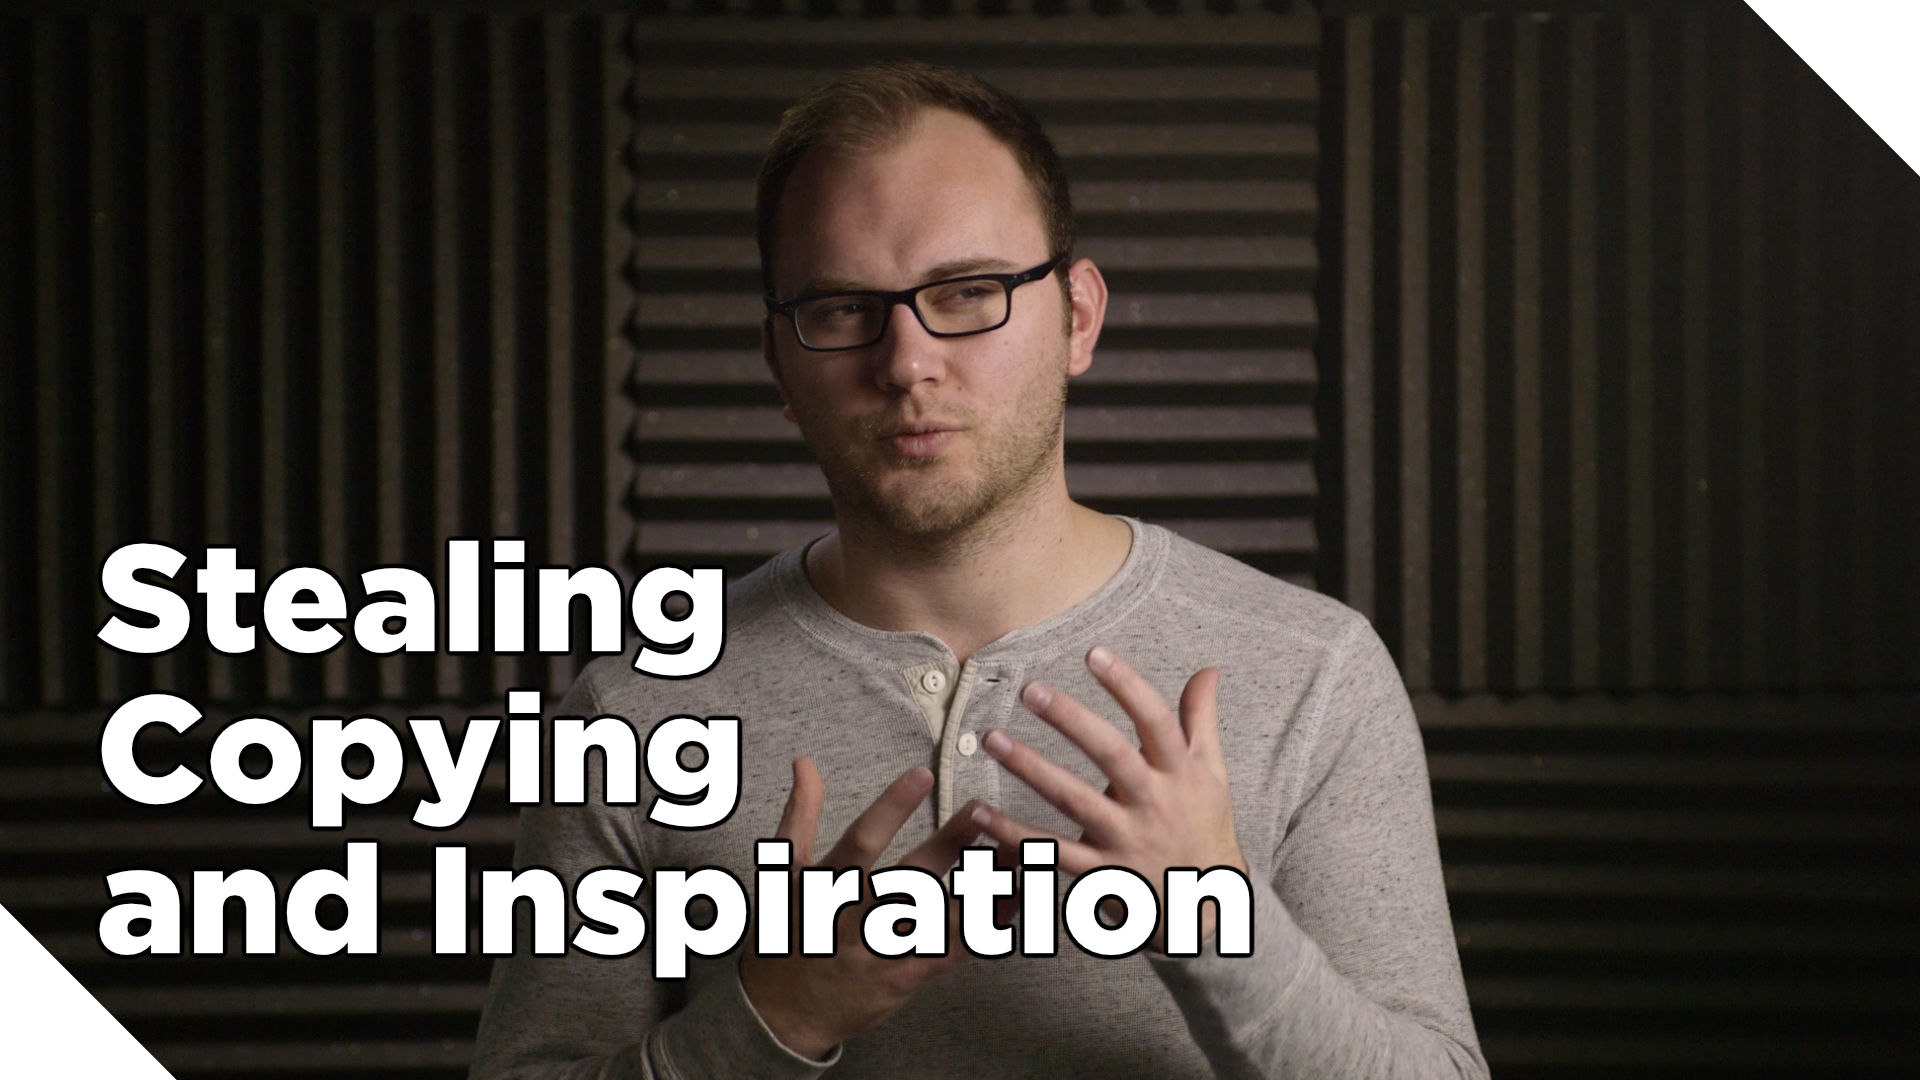 Stealing, Copying and Inspiration